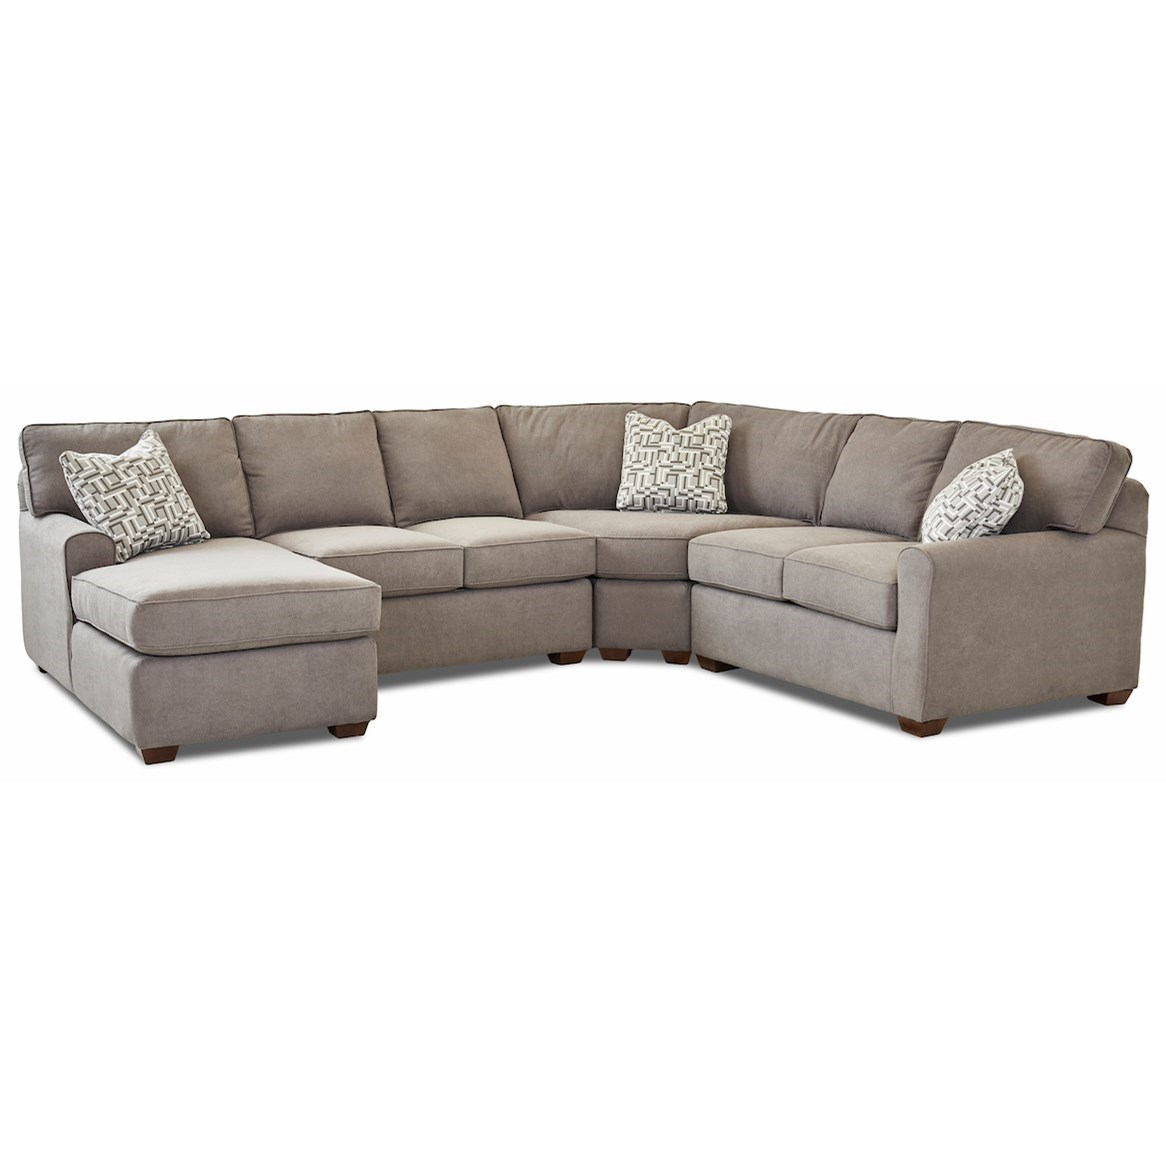 Hybrid 4 Pc Sectional Sofa w/LAF Chaise by Klaussner at Johnny Janosik